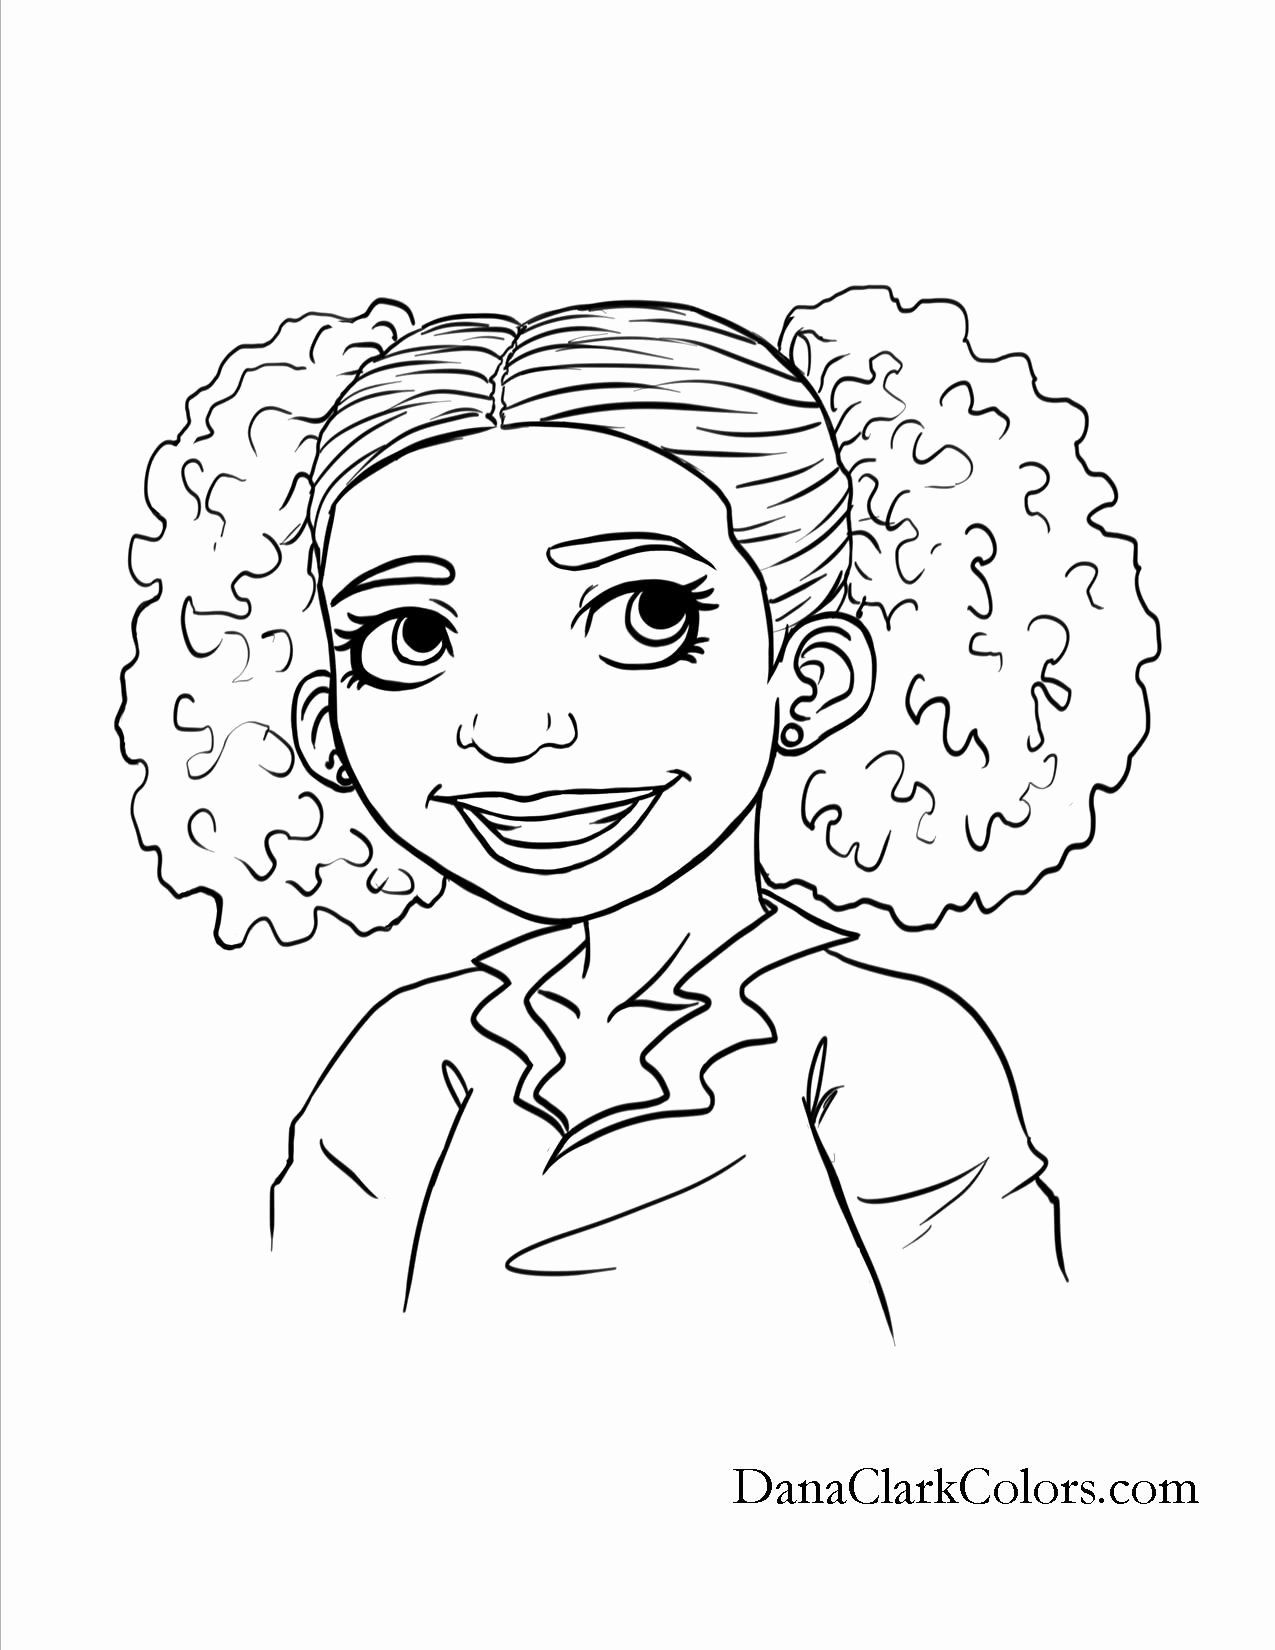 African American Coloring Books Inspirational Black Kids Coloring Page Africanamericancoloringpage In 2020 Coloring Pages Coloring Books Coloring Pages For Girls